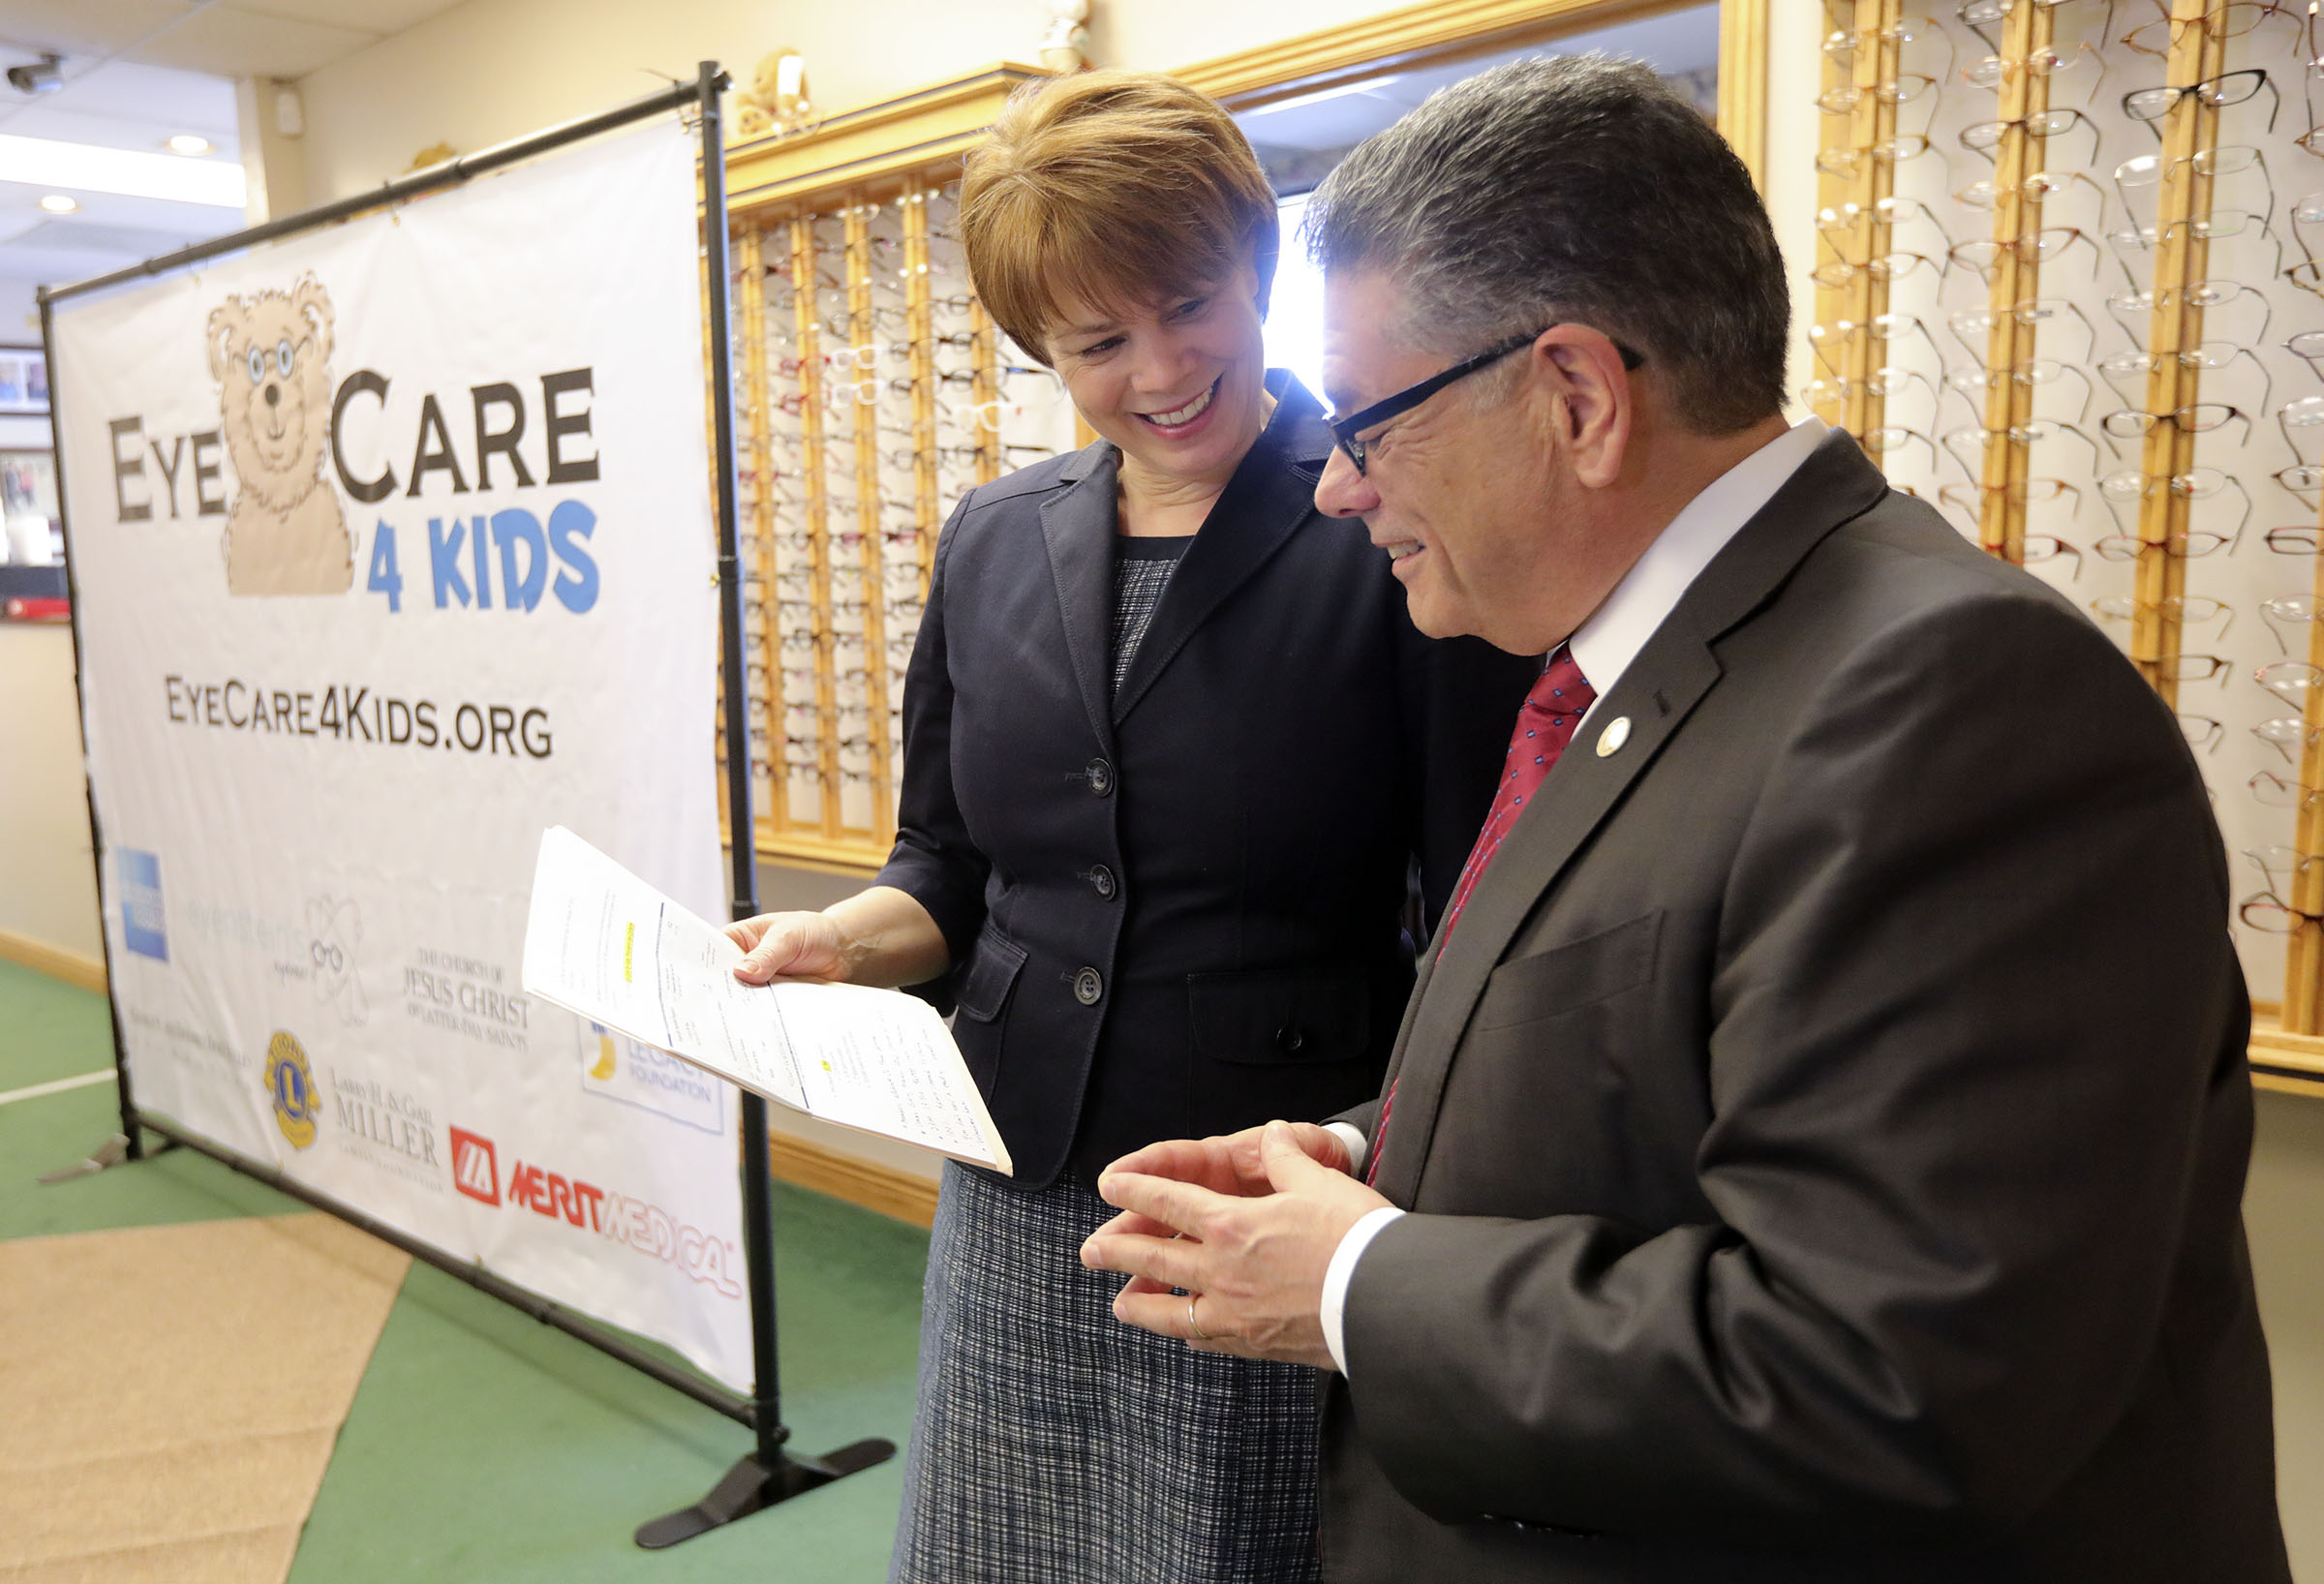 Sister Sharon Eubank, first counselor in the Relief Society general presidency of The Church of Jesus Christ of Latter-day Saints, delivers a donation check for more than $93,000 from the church's 2018 Light the World campaign to Joseph Carbone, right, president and founder of Eye Care 4 Kids, at Eye Care 4 Kids in Midvale, Utah, on Thursday, Feb. 7, 2019.